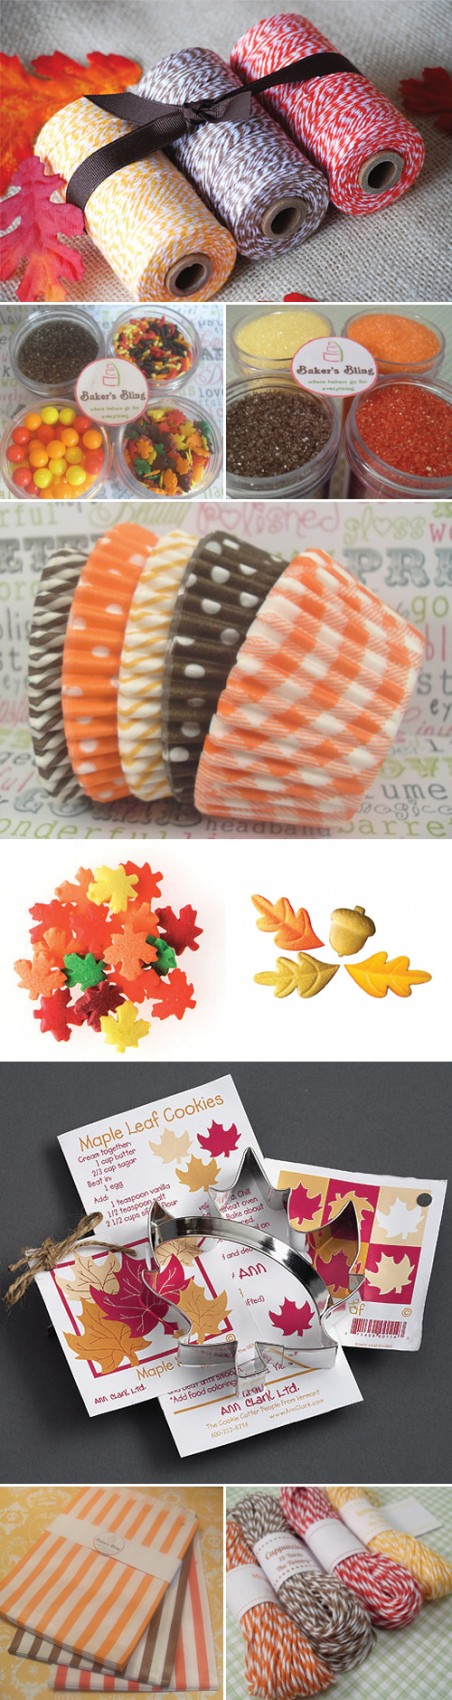 Thanksgiving Baking Supplies from Bakers Bling on Etsy